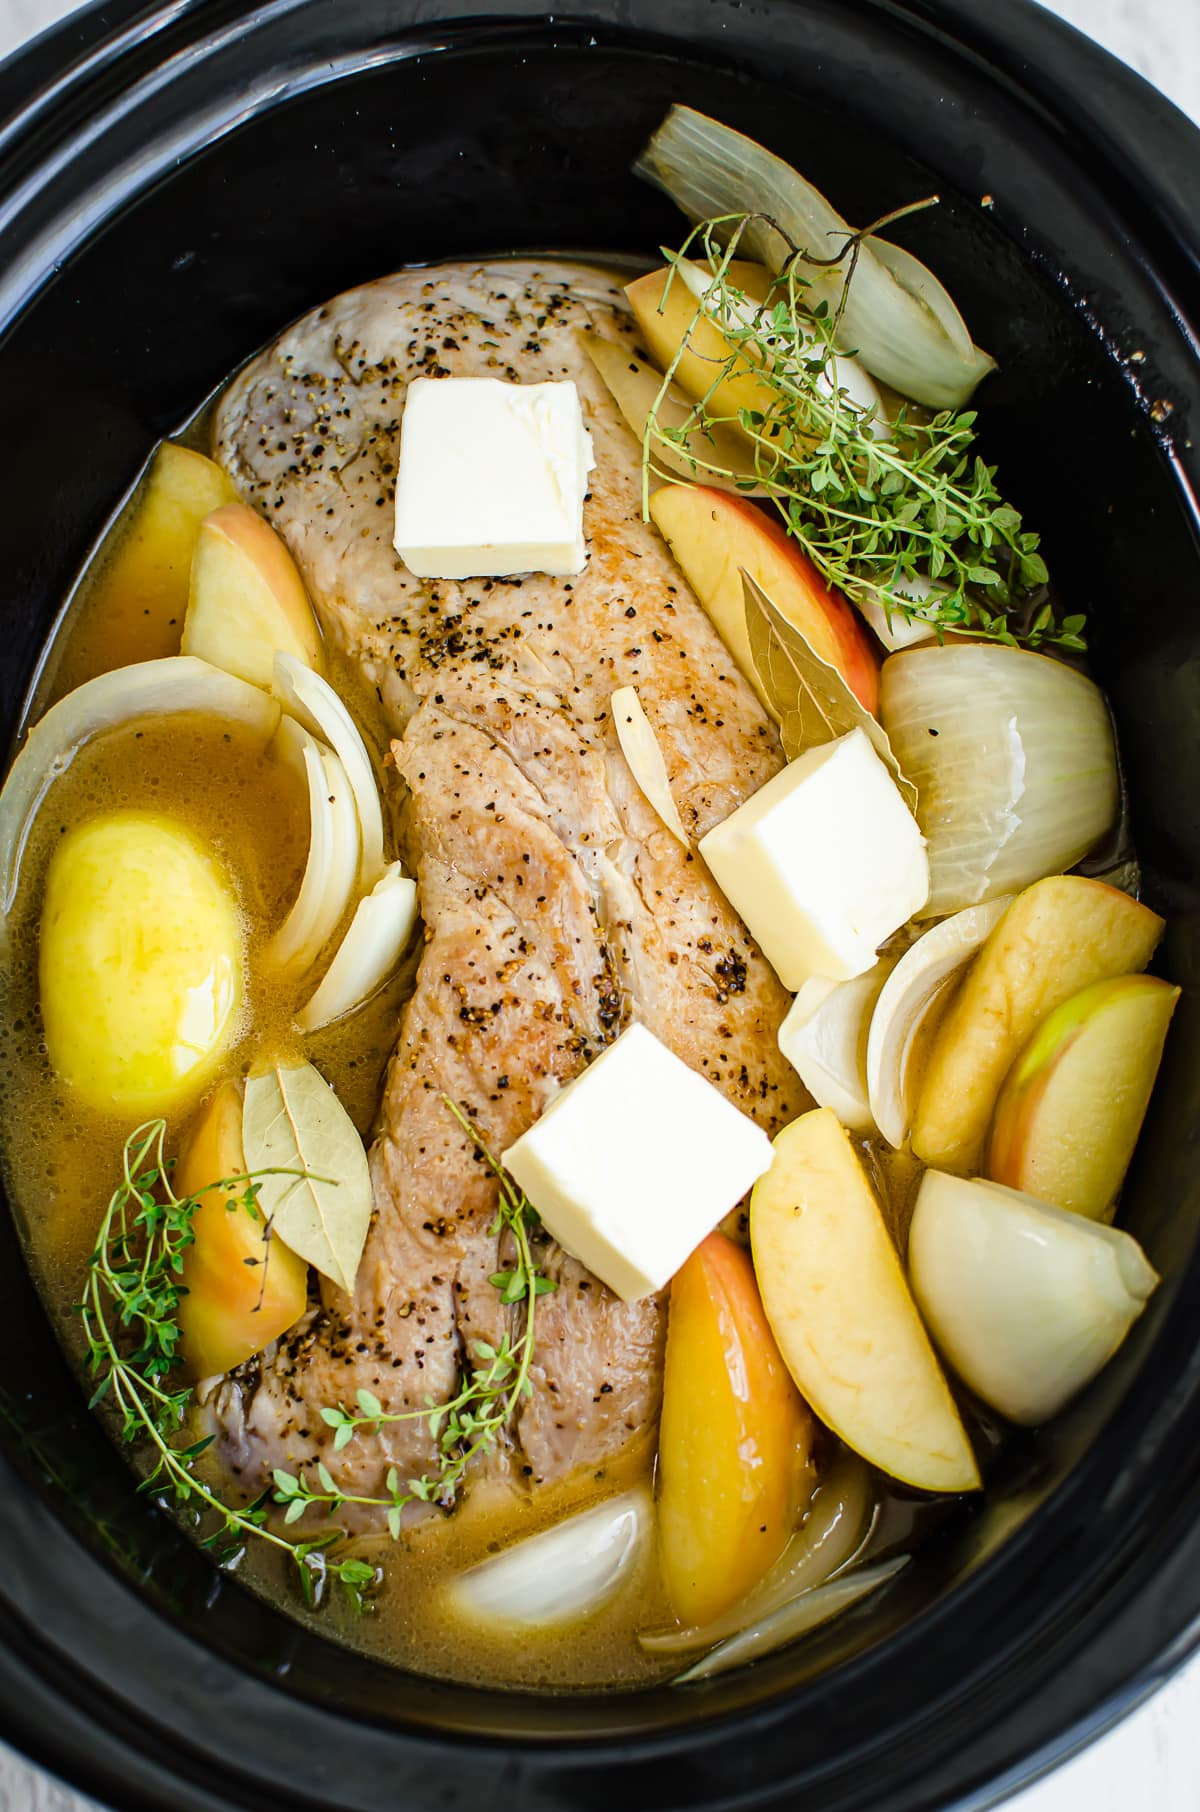 A pork loin roast in a slow cooker with apples, onions, thyme, butter pats, and apple cider.